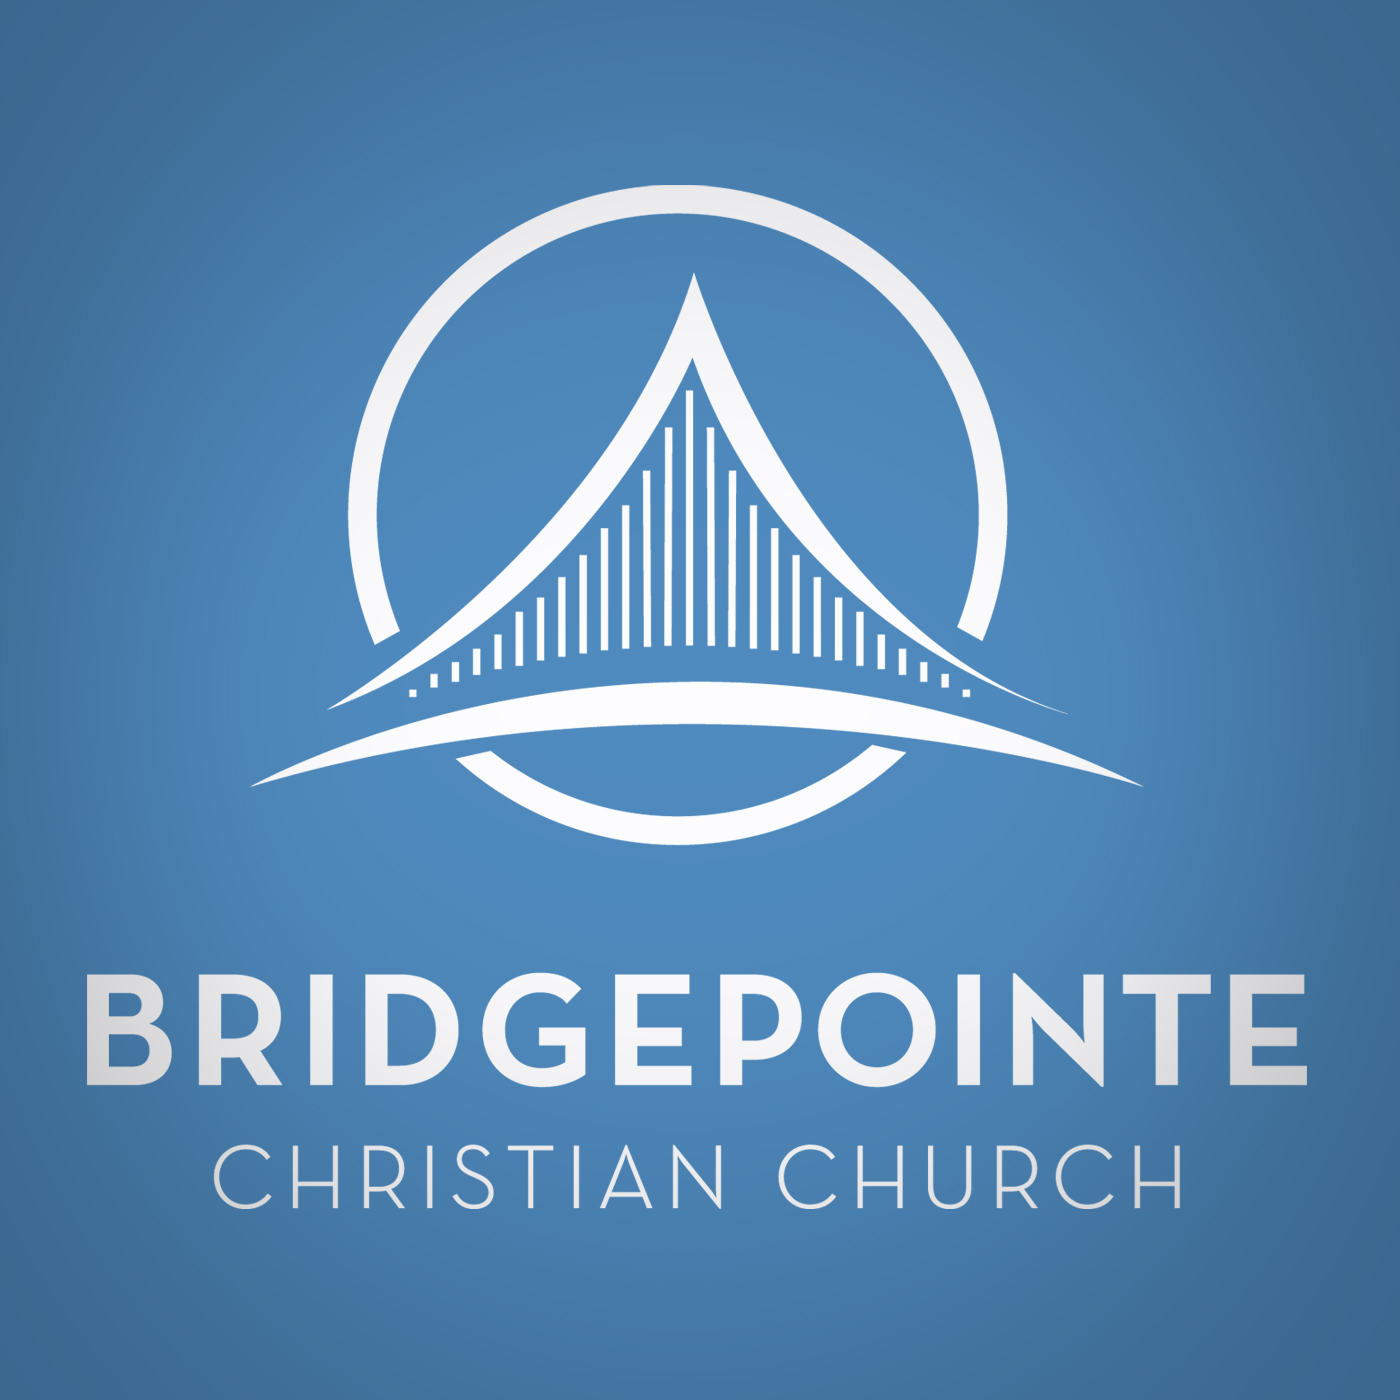 LISTEN - BridgePointe Christian Church